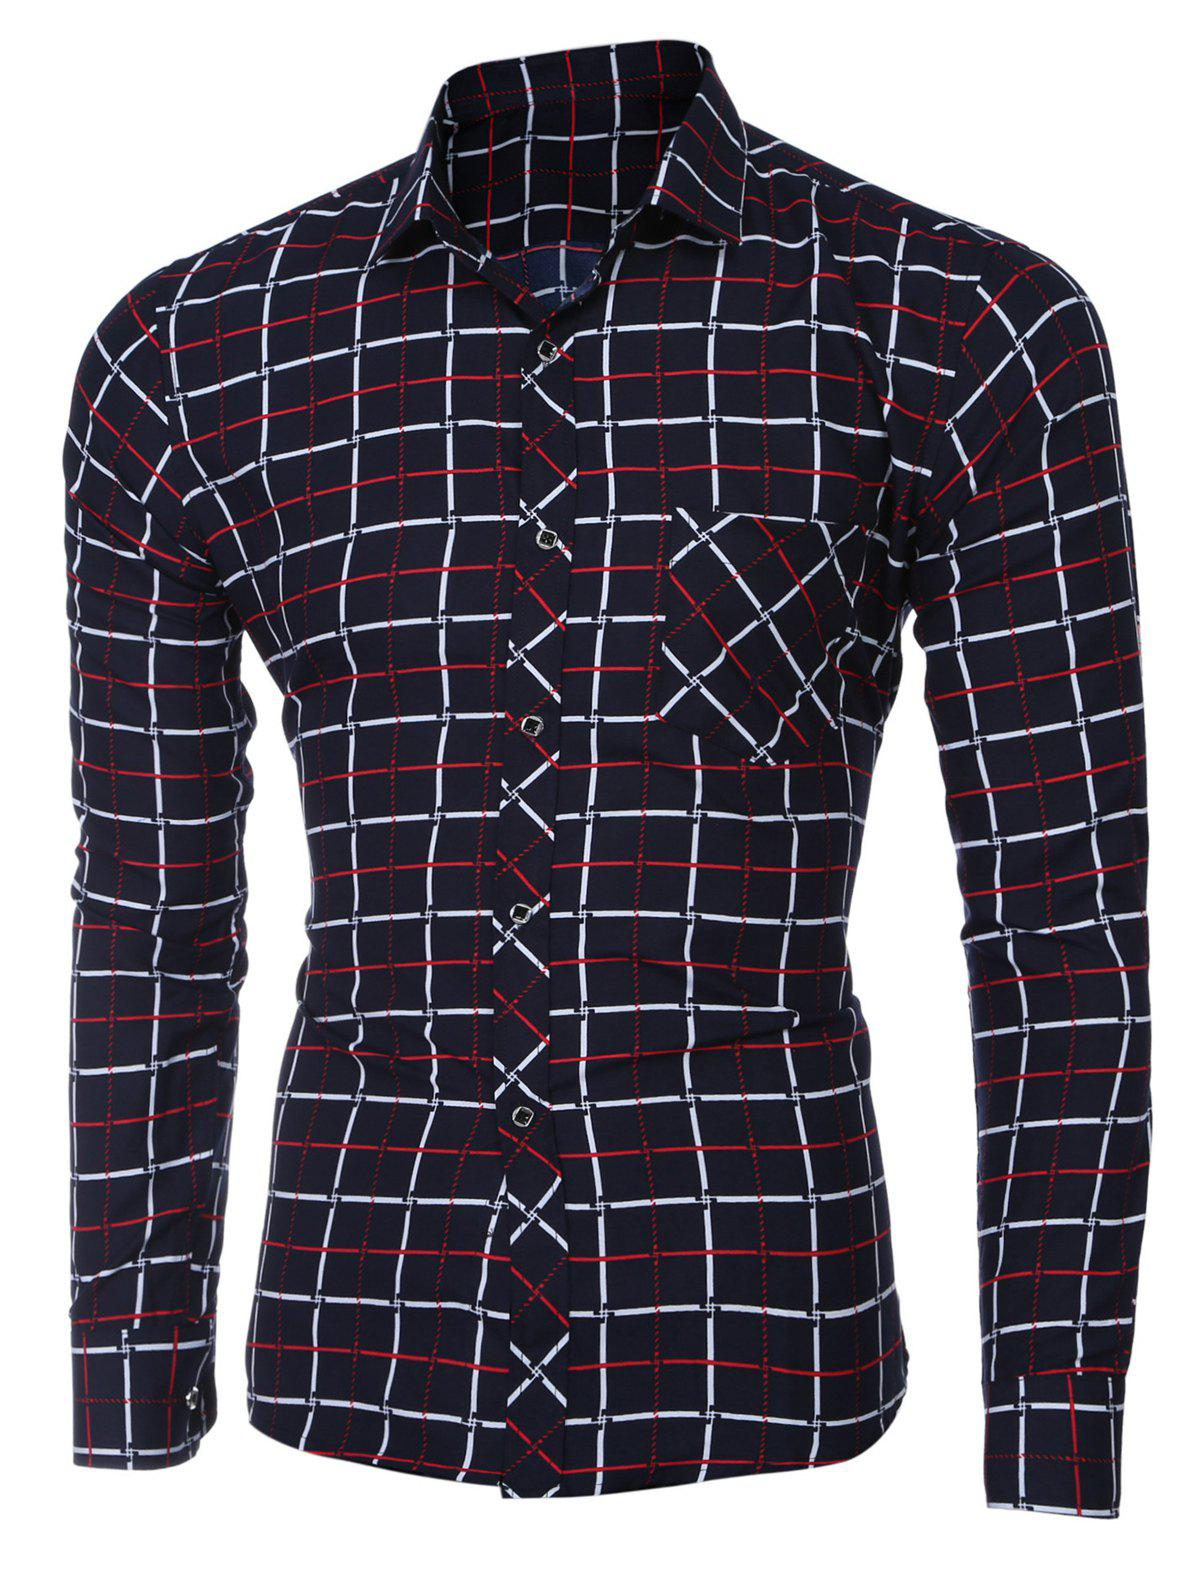 Turn-down Collar Checked Printing Long Sleeves Shirt For Men - RED M